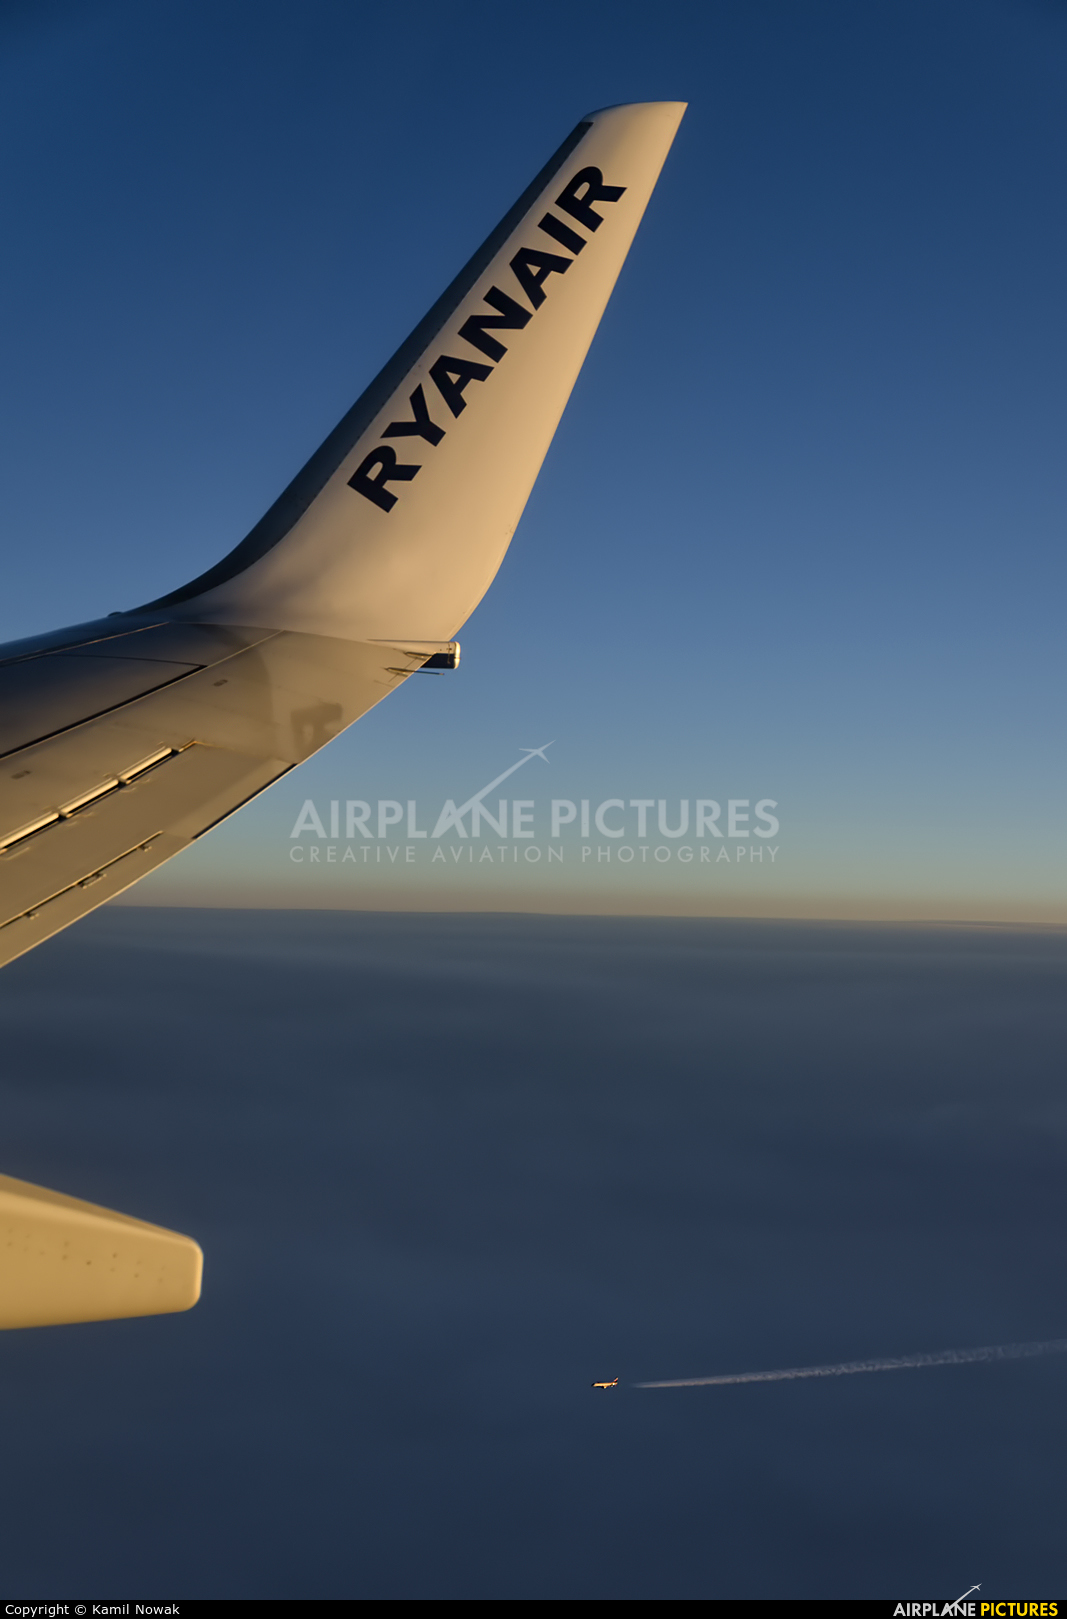 Ryanair EI-DAK aircraft at In Flight - Germany